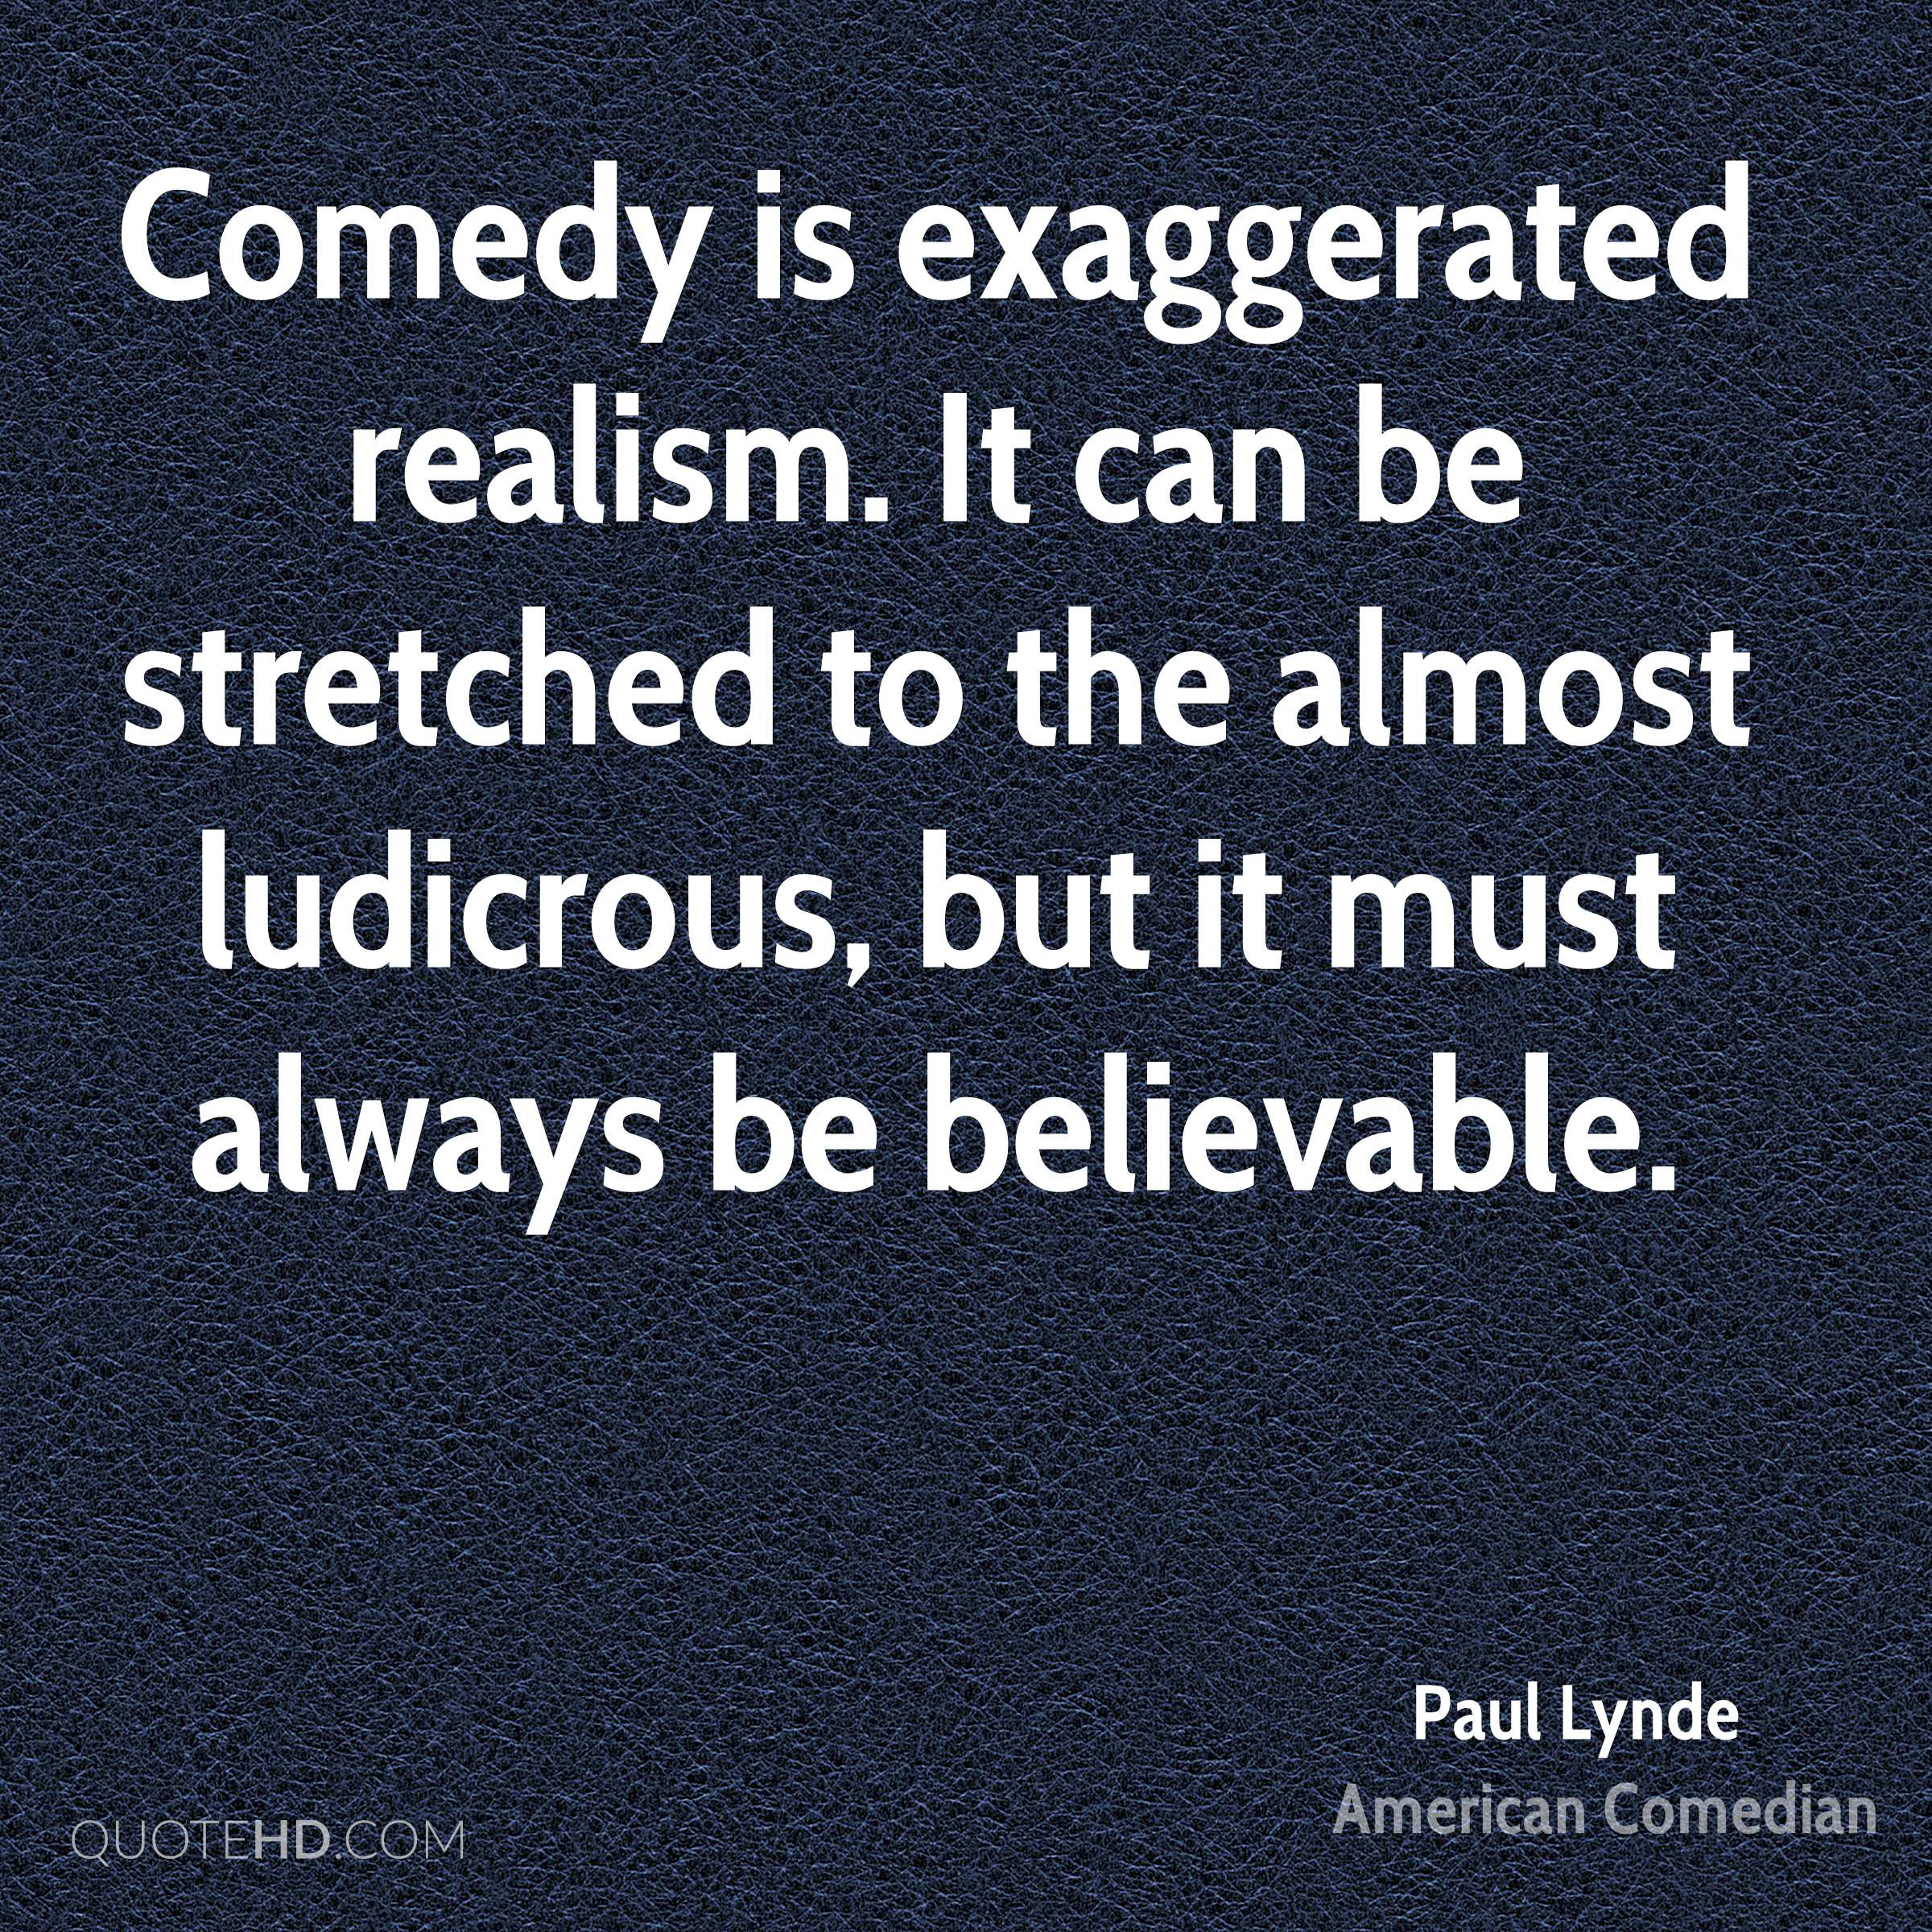 Comedy is exaggerated realism. It can be stretched to the almost ludicrous, but it must always be believable.